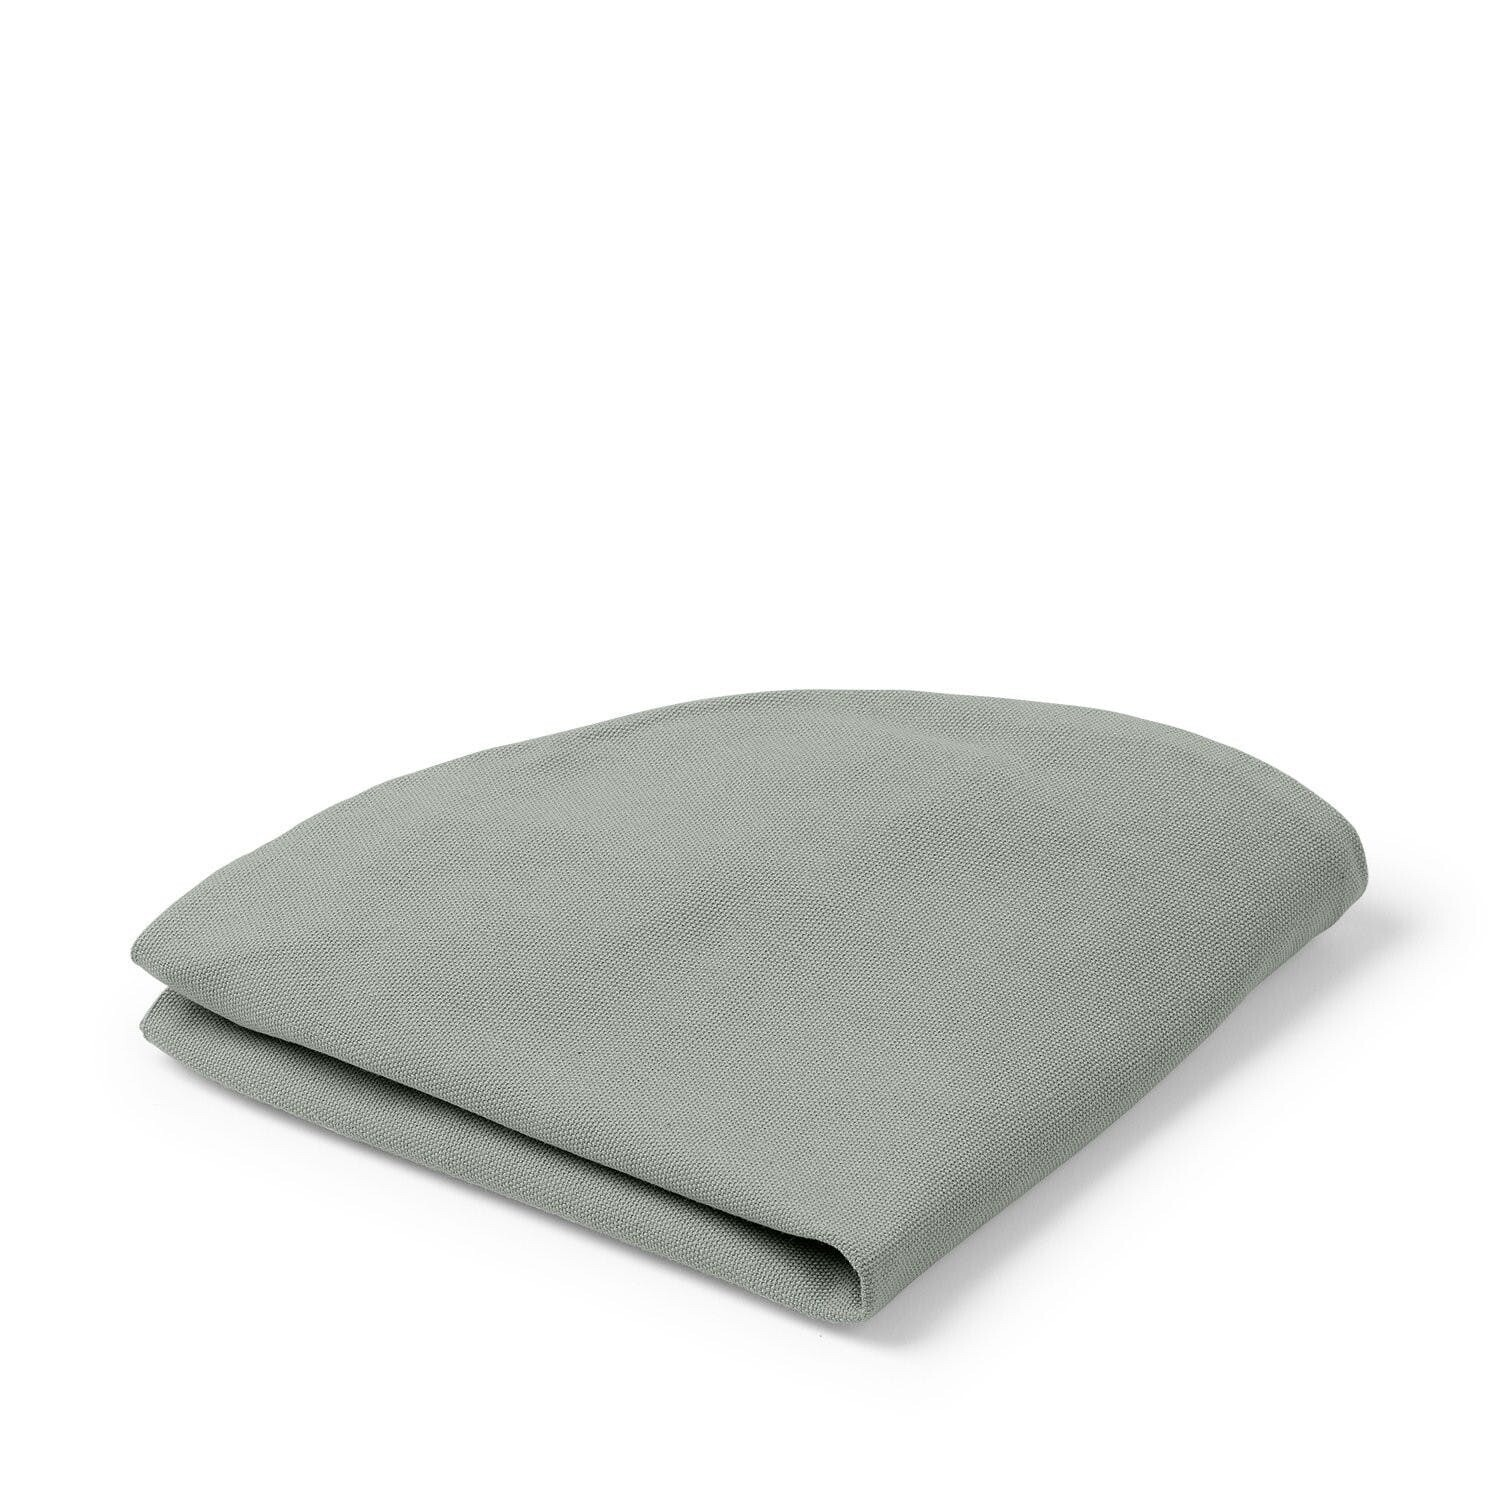 TADAZHI HUNDEBETT / KATZENBETT BETTLAKEN POESPAS BED SHEET MELLOW GREEN